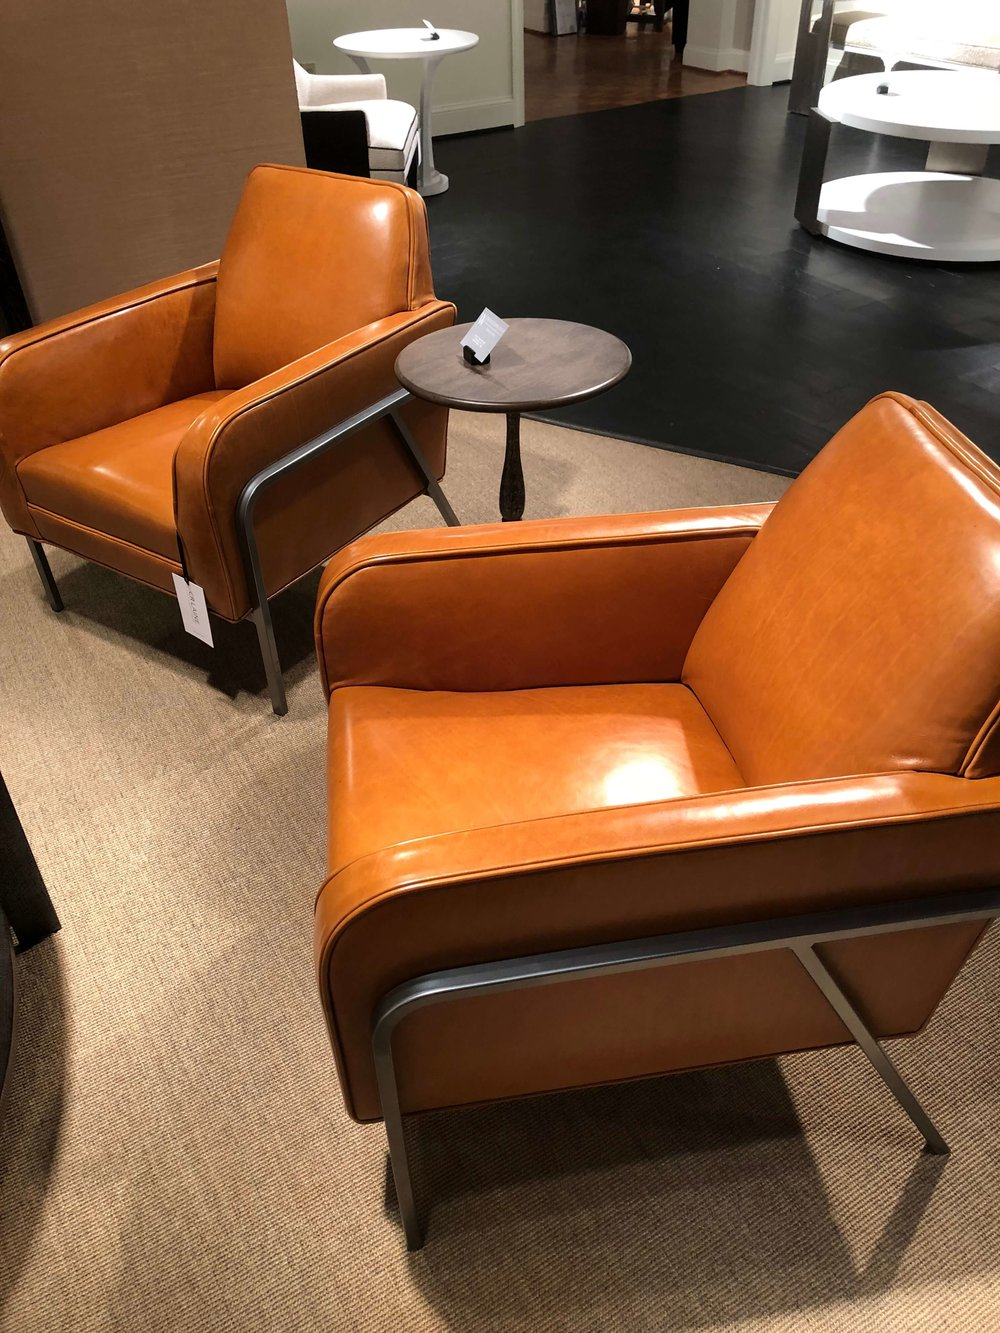 Caramel leather modern chairs by Woodbridge Furniture